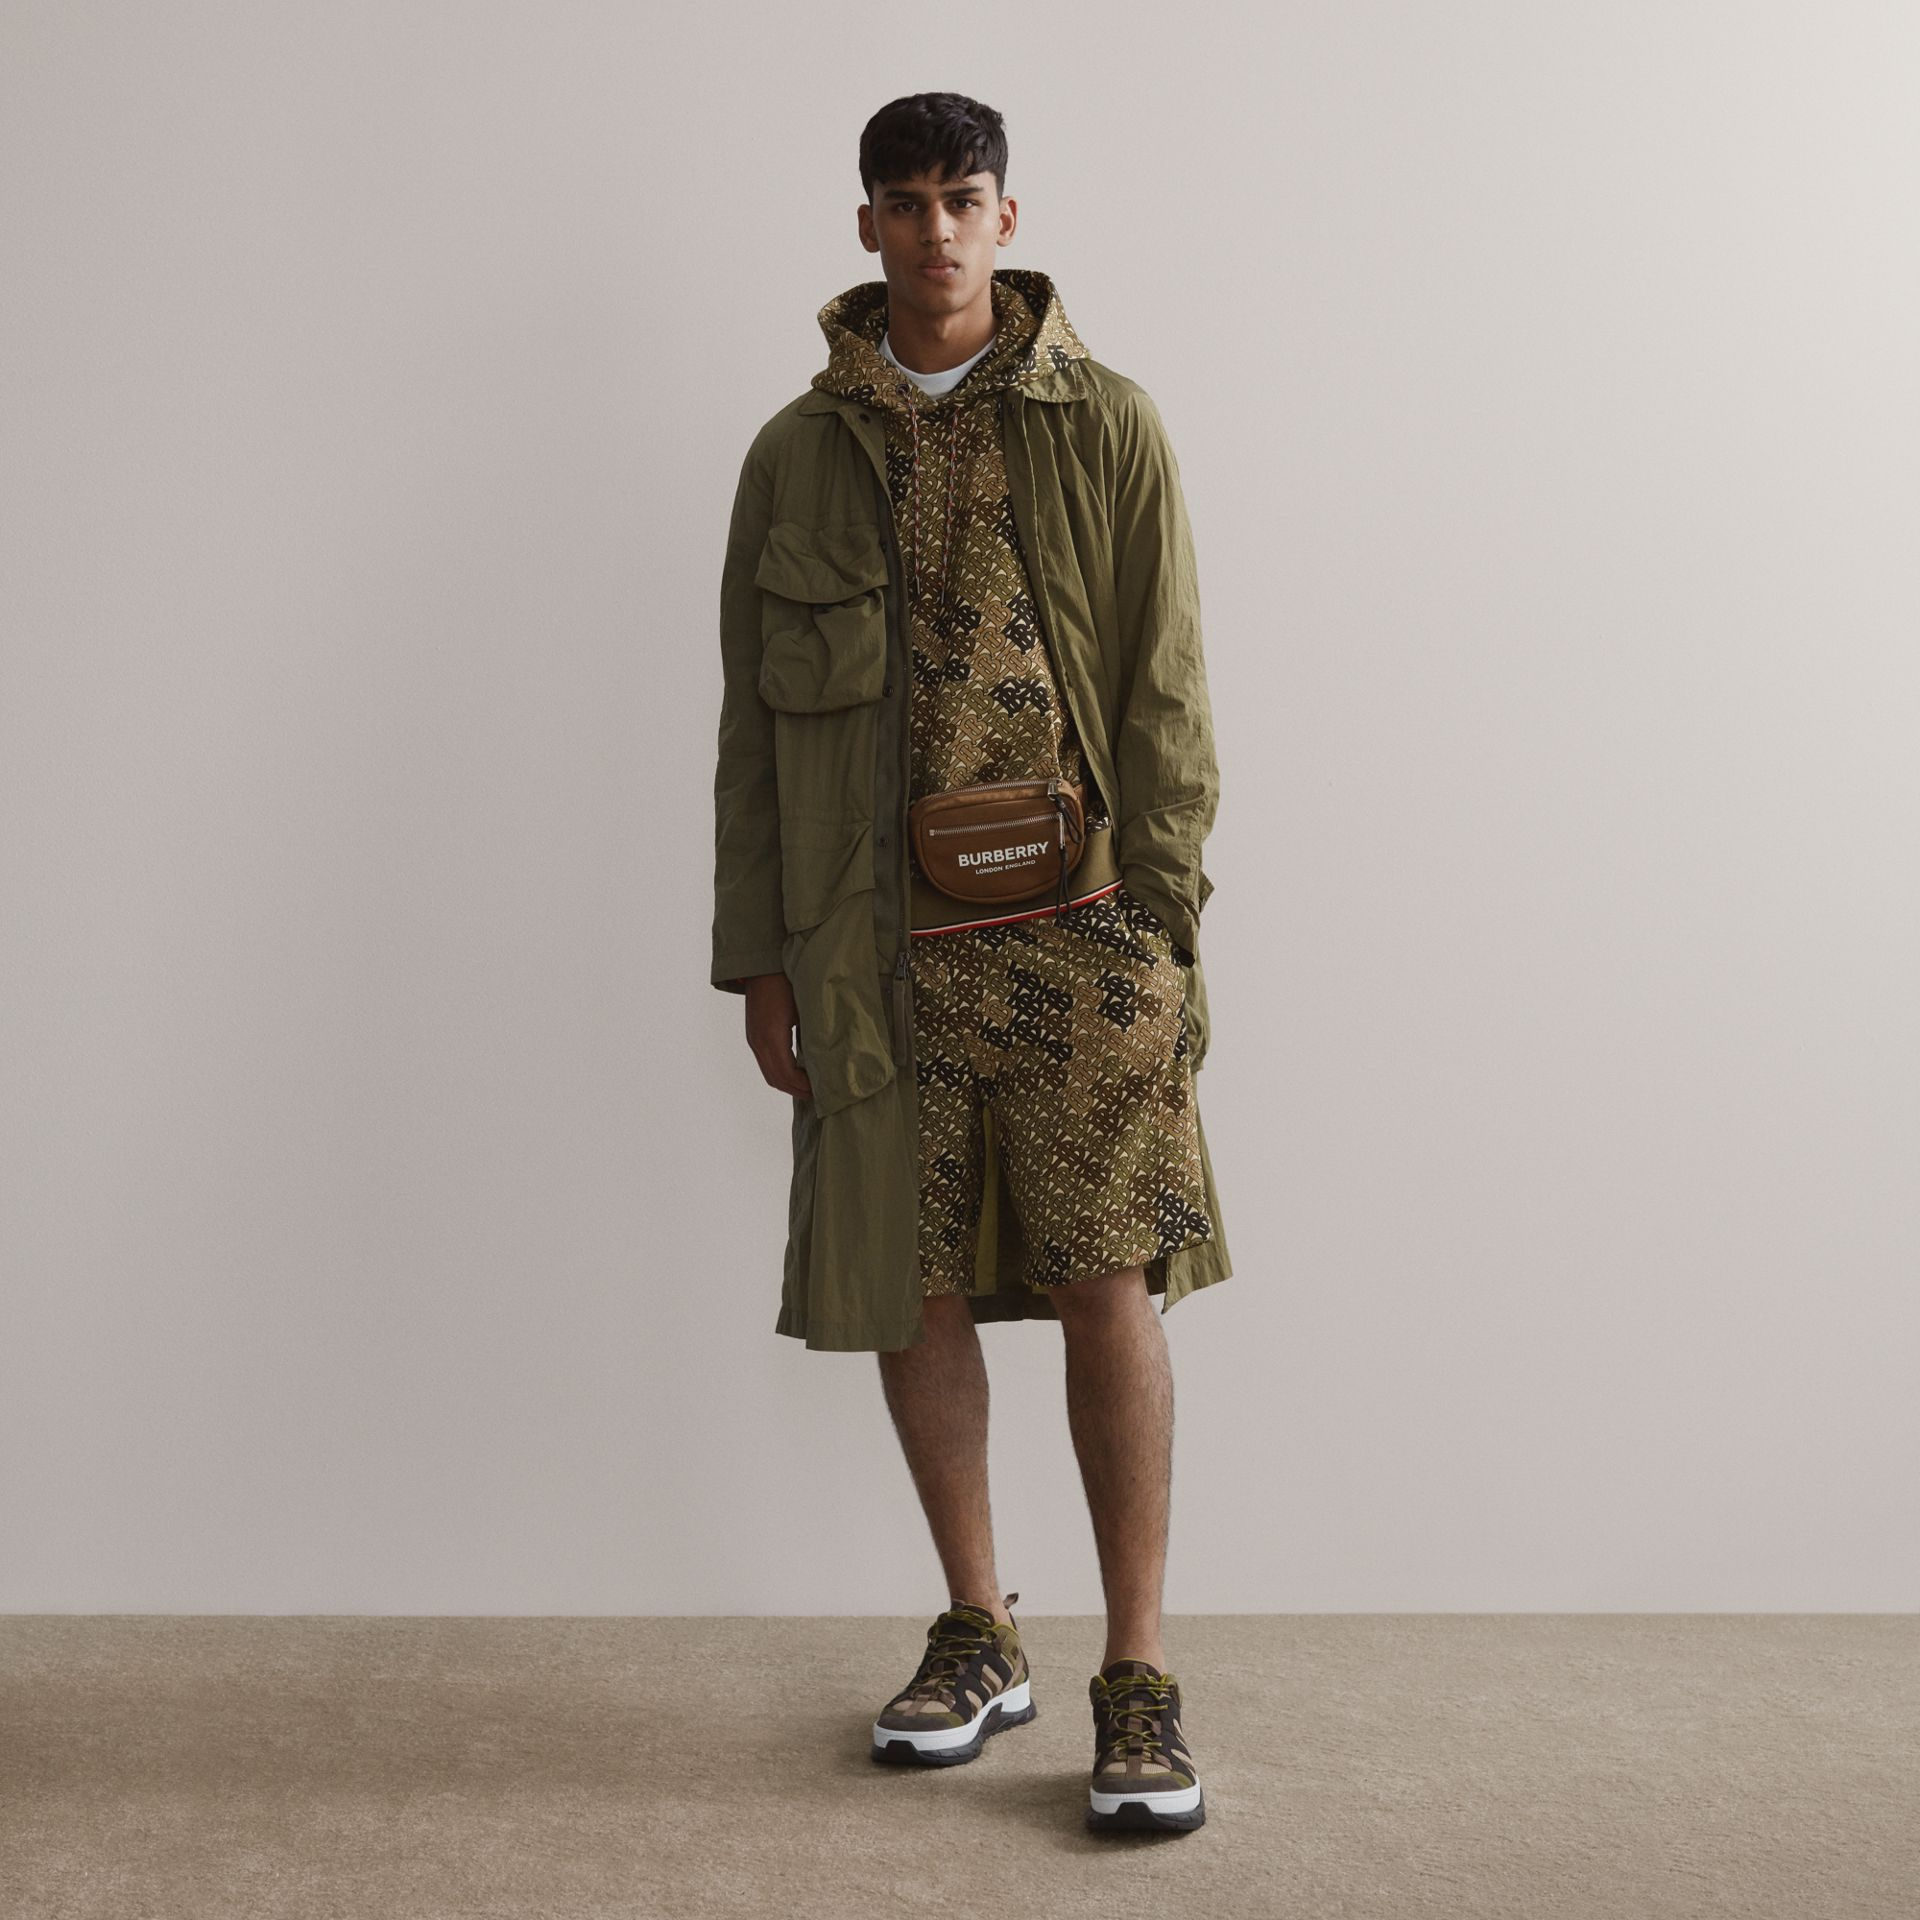 Monogram Print Cotton Drawcord Shorts in Khaki Green | Burberry - gallery image 1